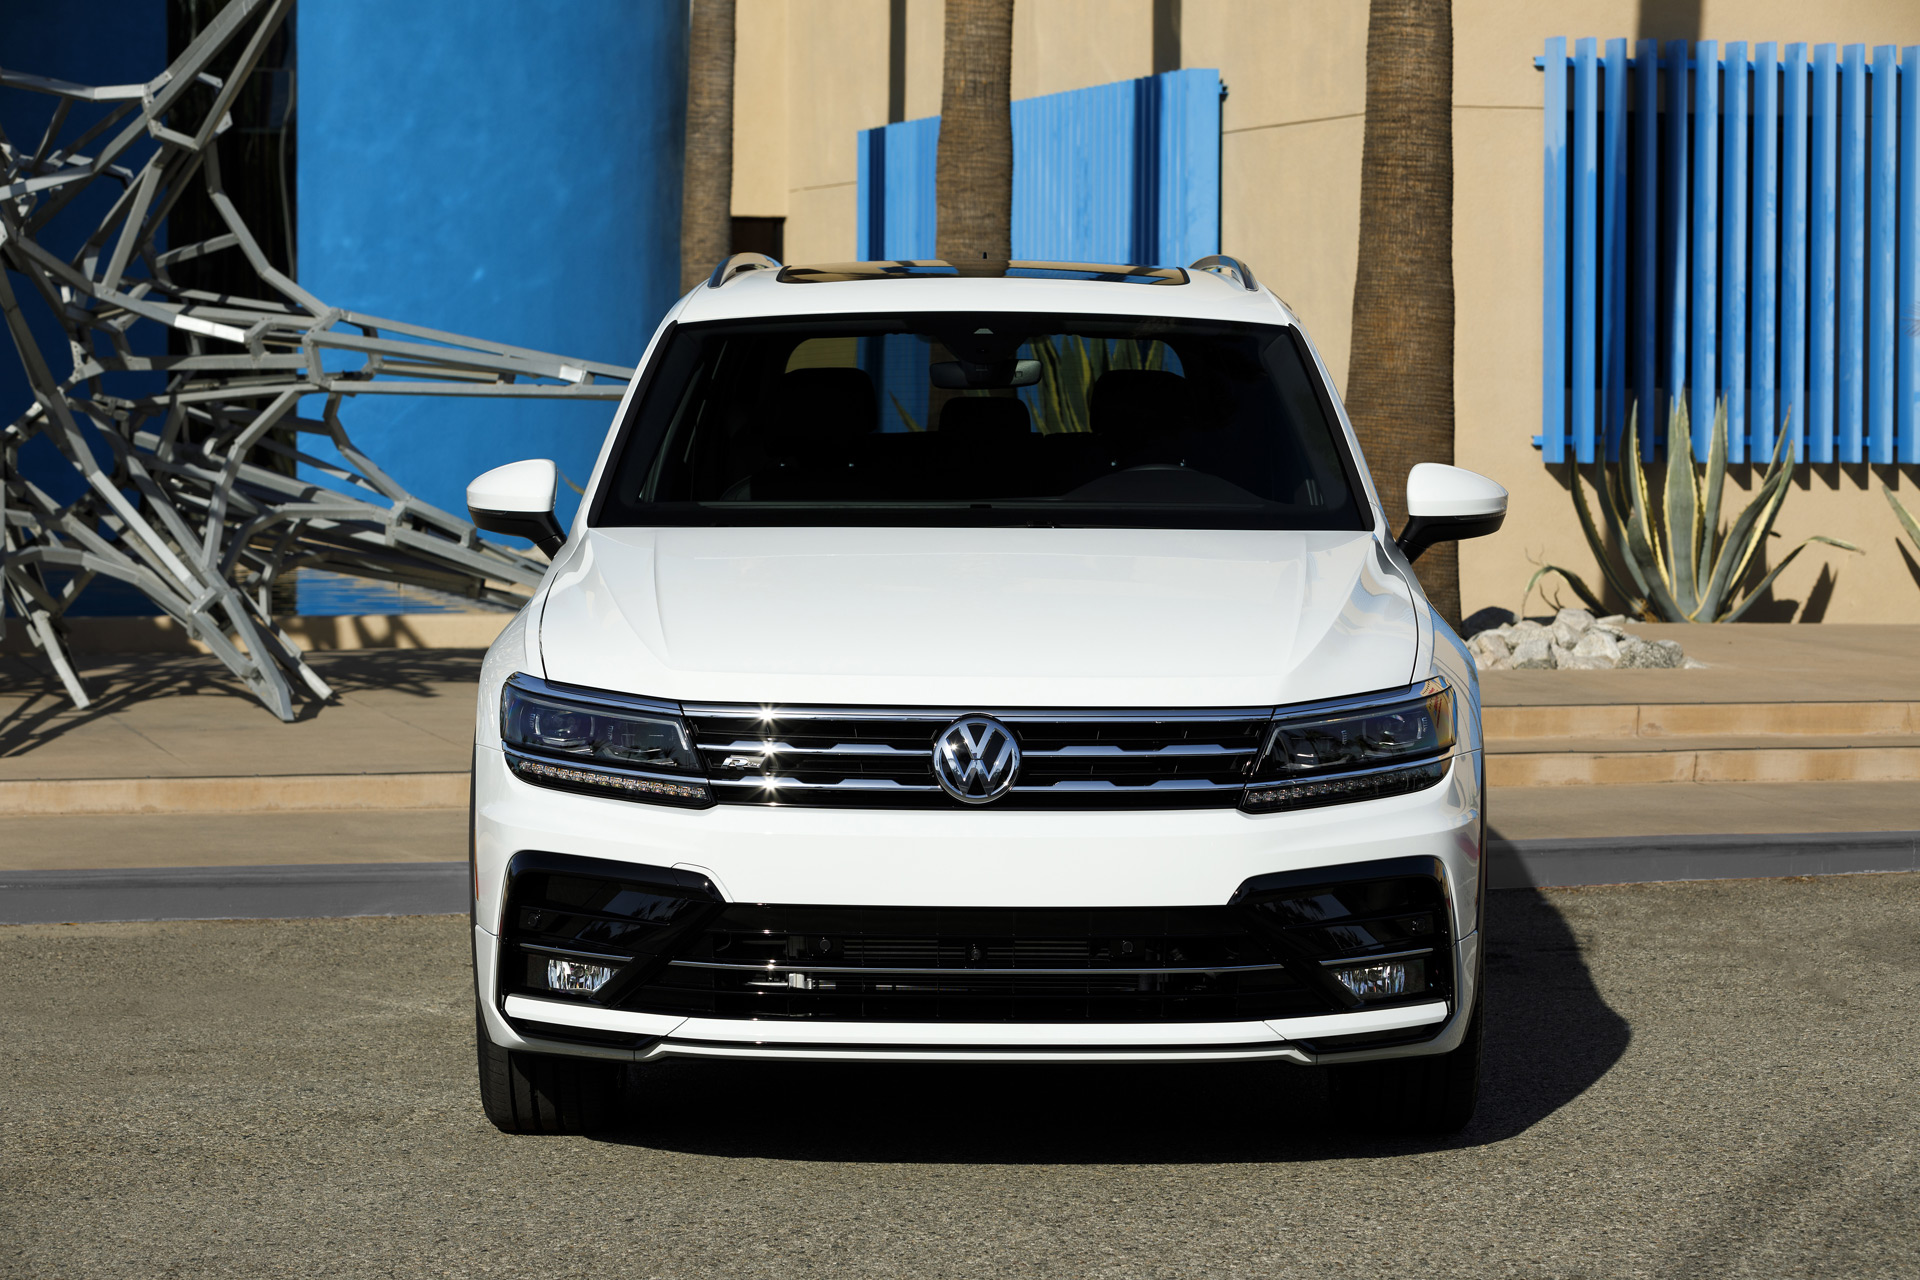 2018 Volkswagen Tiguan R Line Adds Style And Spice For A